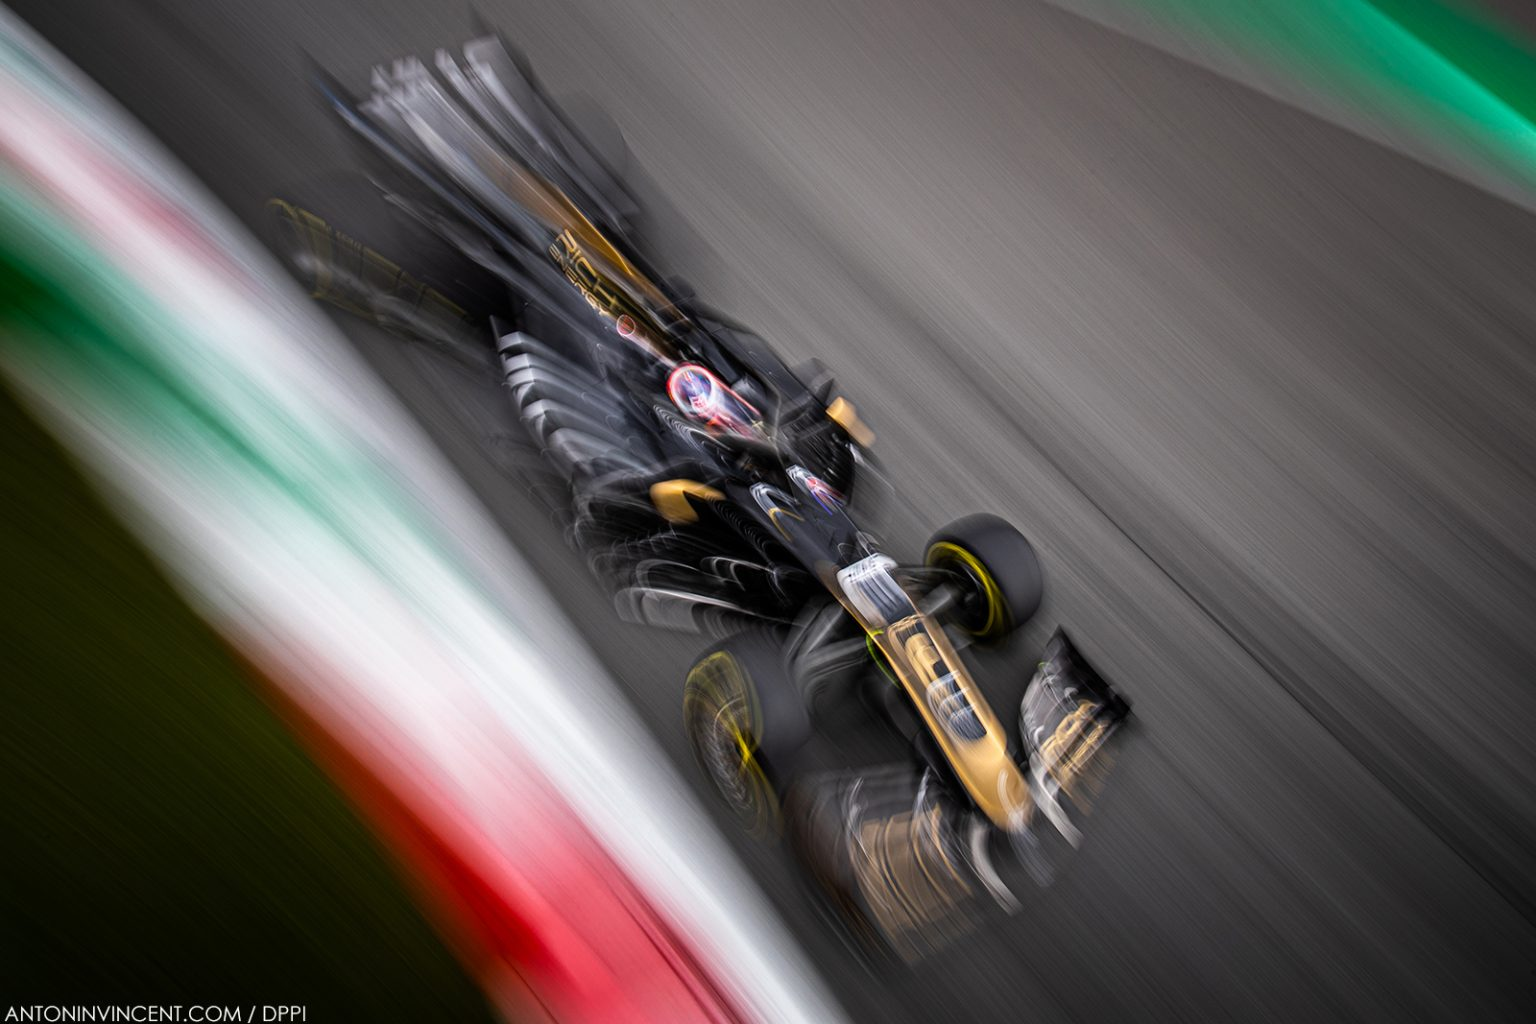 08 GROSJEAN Romain (fra), Haas F1 Team VF-19 Ferrari, action during 2019 Formula 1 FIA world championship, Italy Grand Prix, at Monza from september 5 to 9  - Photo Antonin Vincent / DPPI